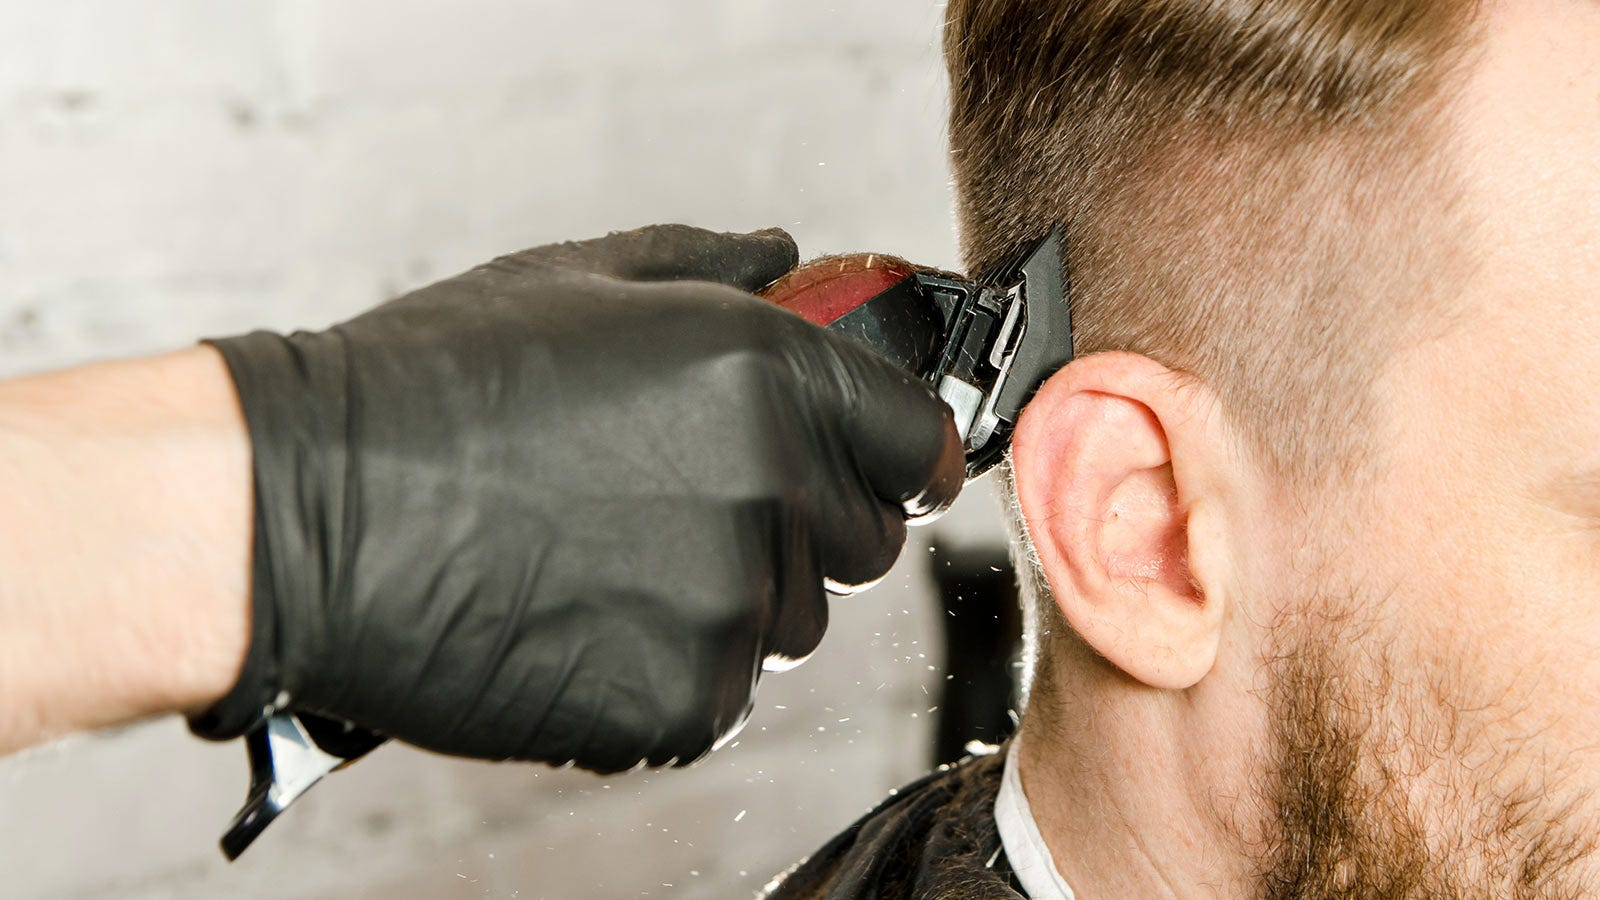 Man getting his hair faded by a barber using clippers.